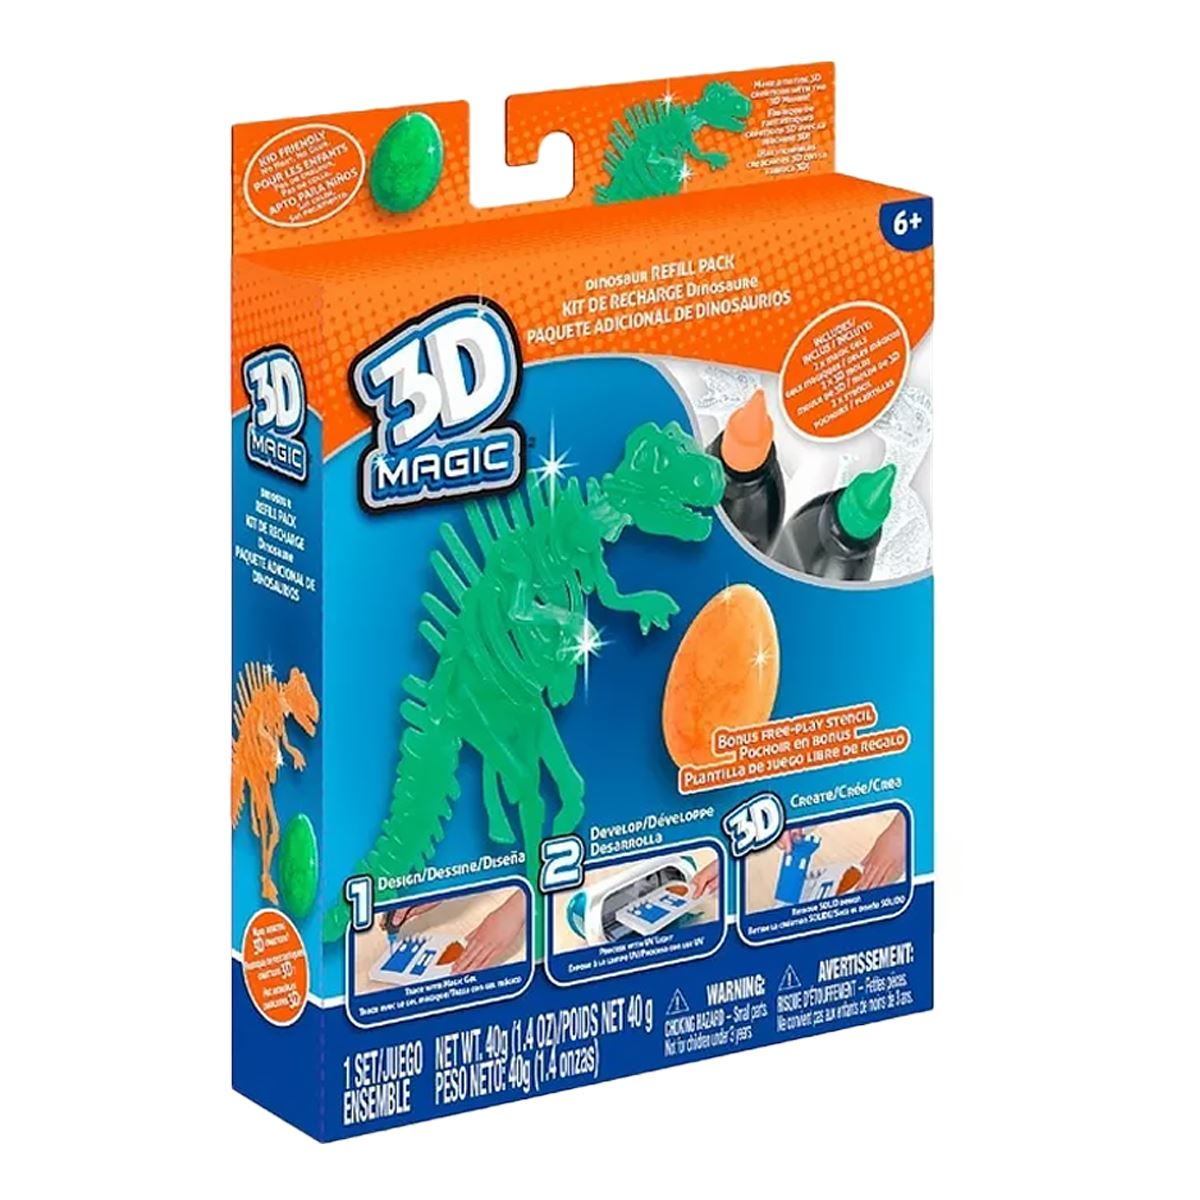 Molds /& Stencils Tech4Kids 3D Magic Building Activity Pack Includes Gels